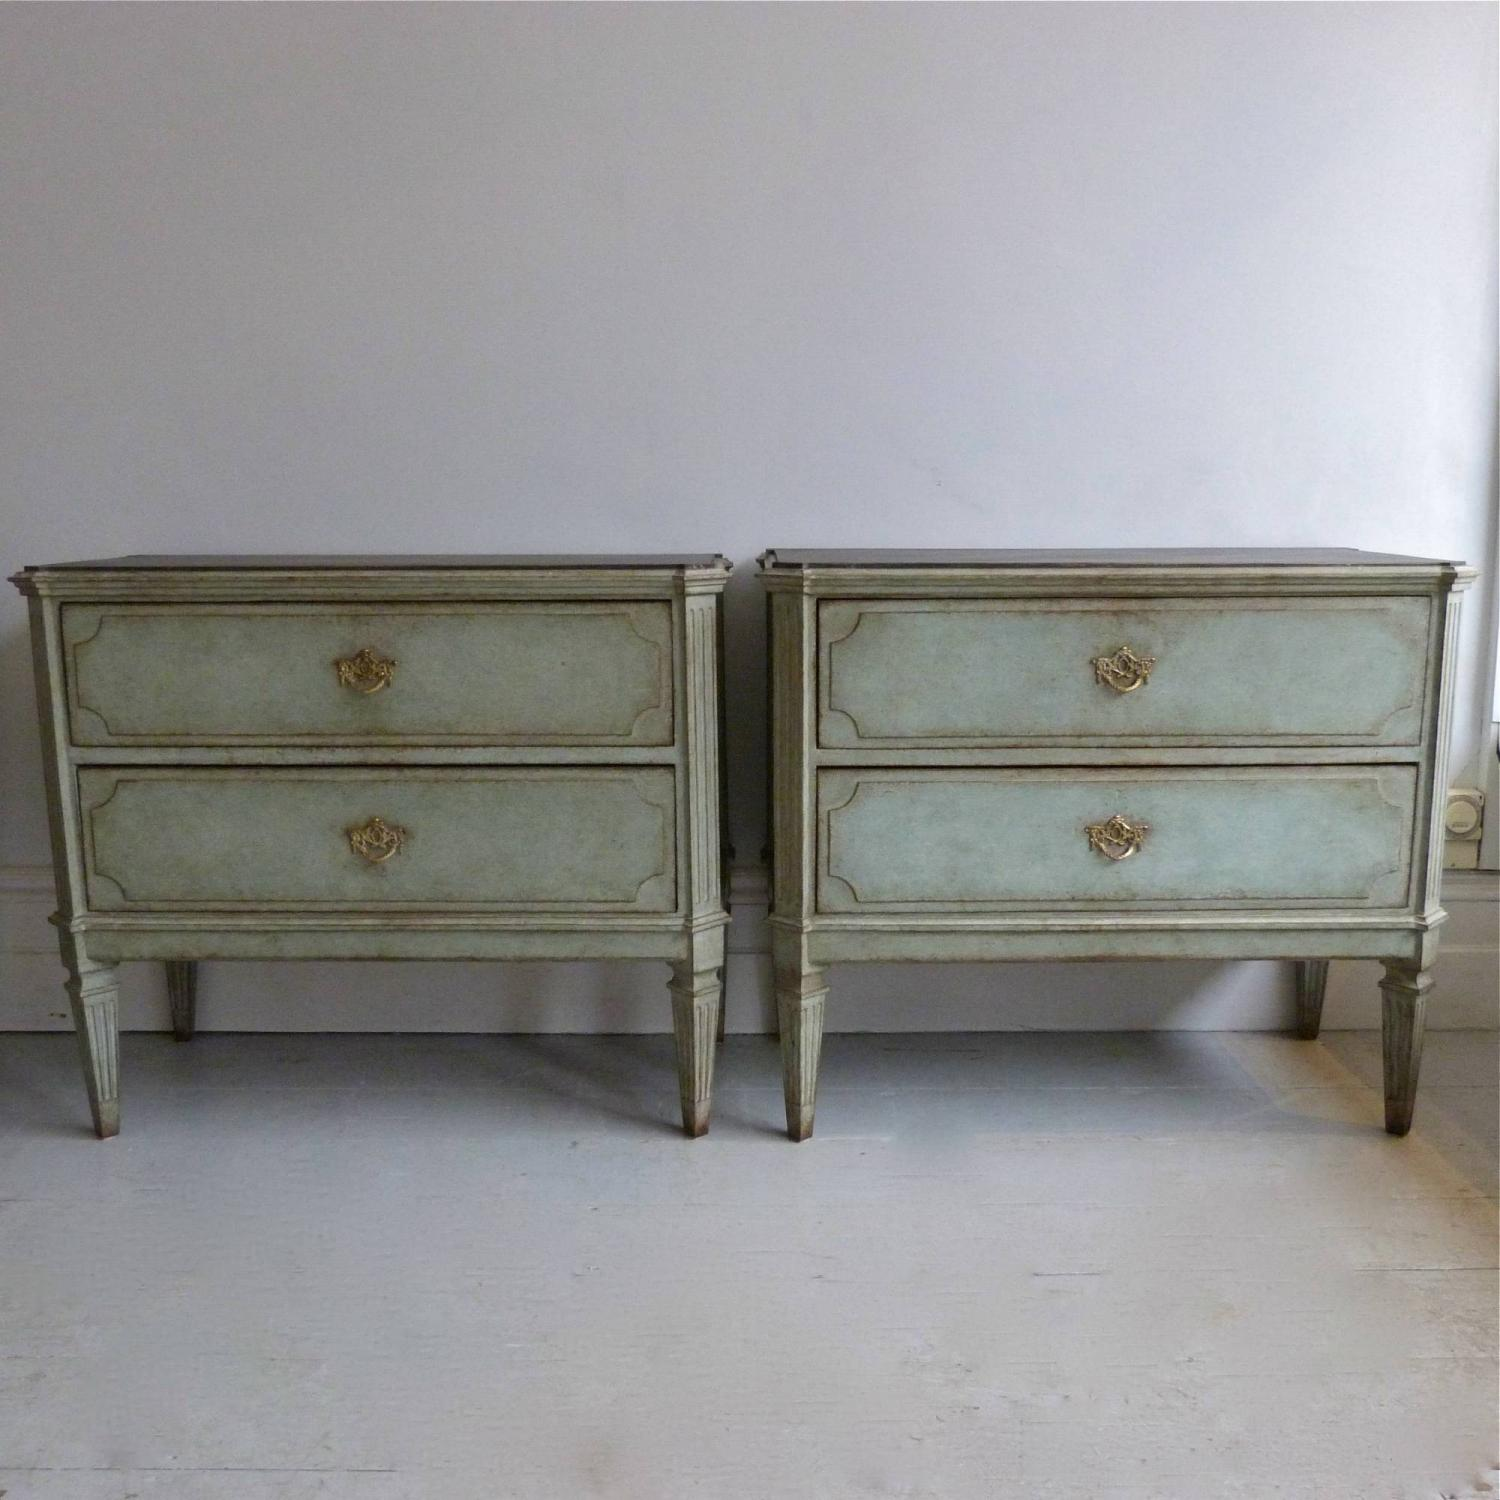 DECORATIVE PAIR OF SWEDISH GUSTAVIAN STYLE CHESTS